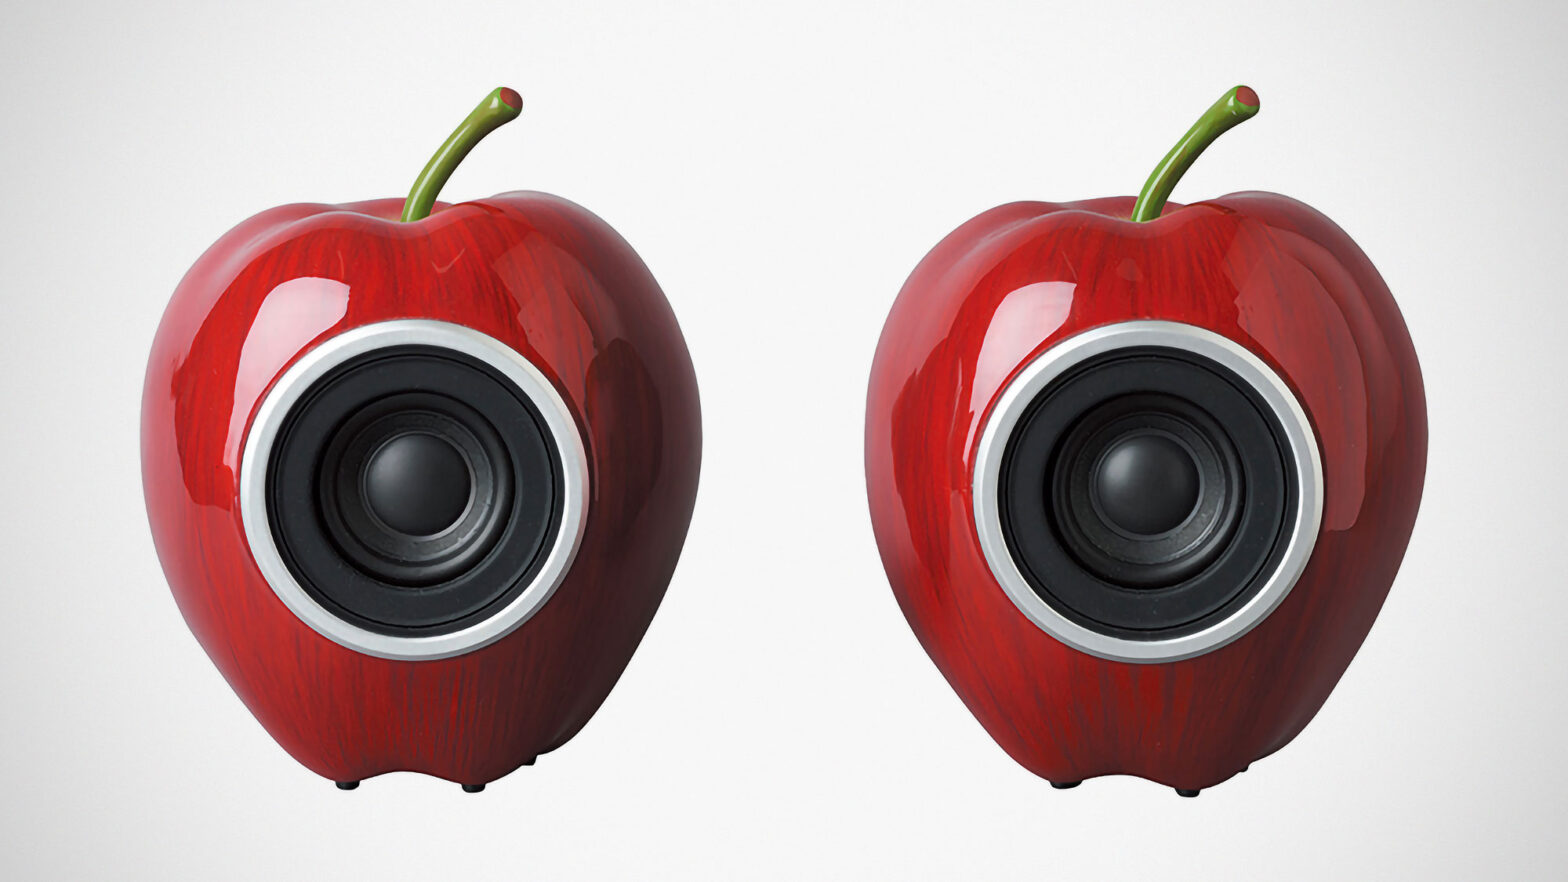 UNDERCOVER x Medicom Toy GILAPPLE Speakers